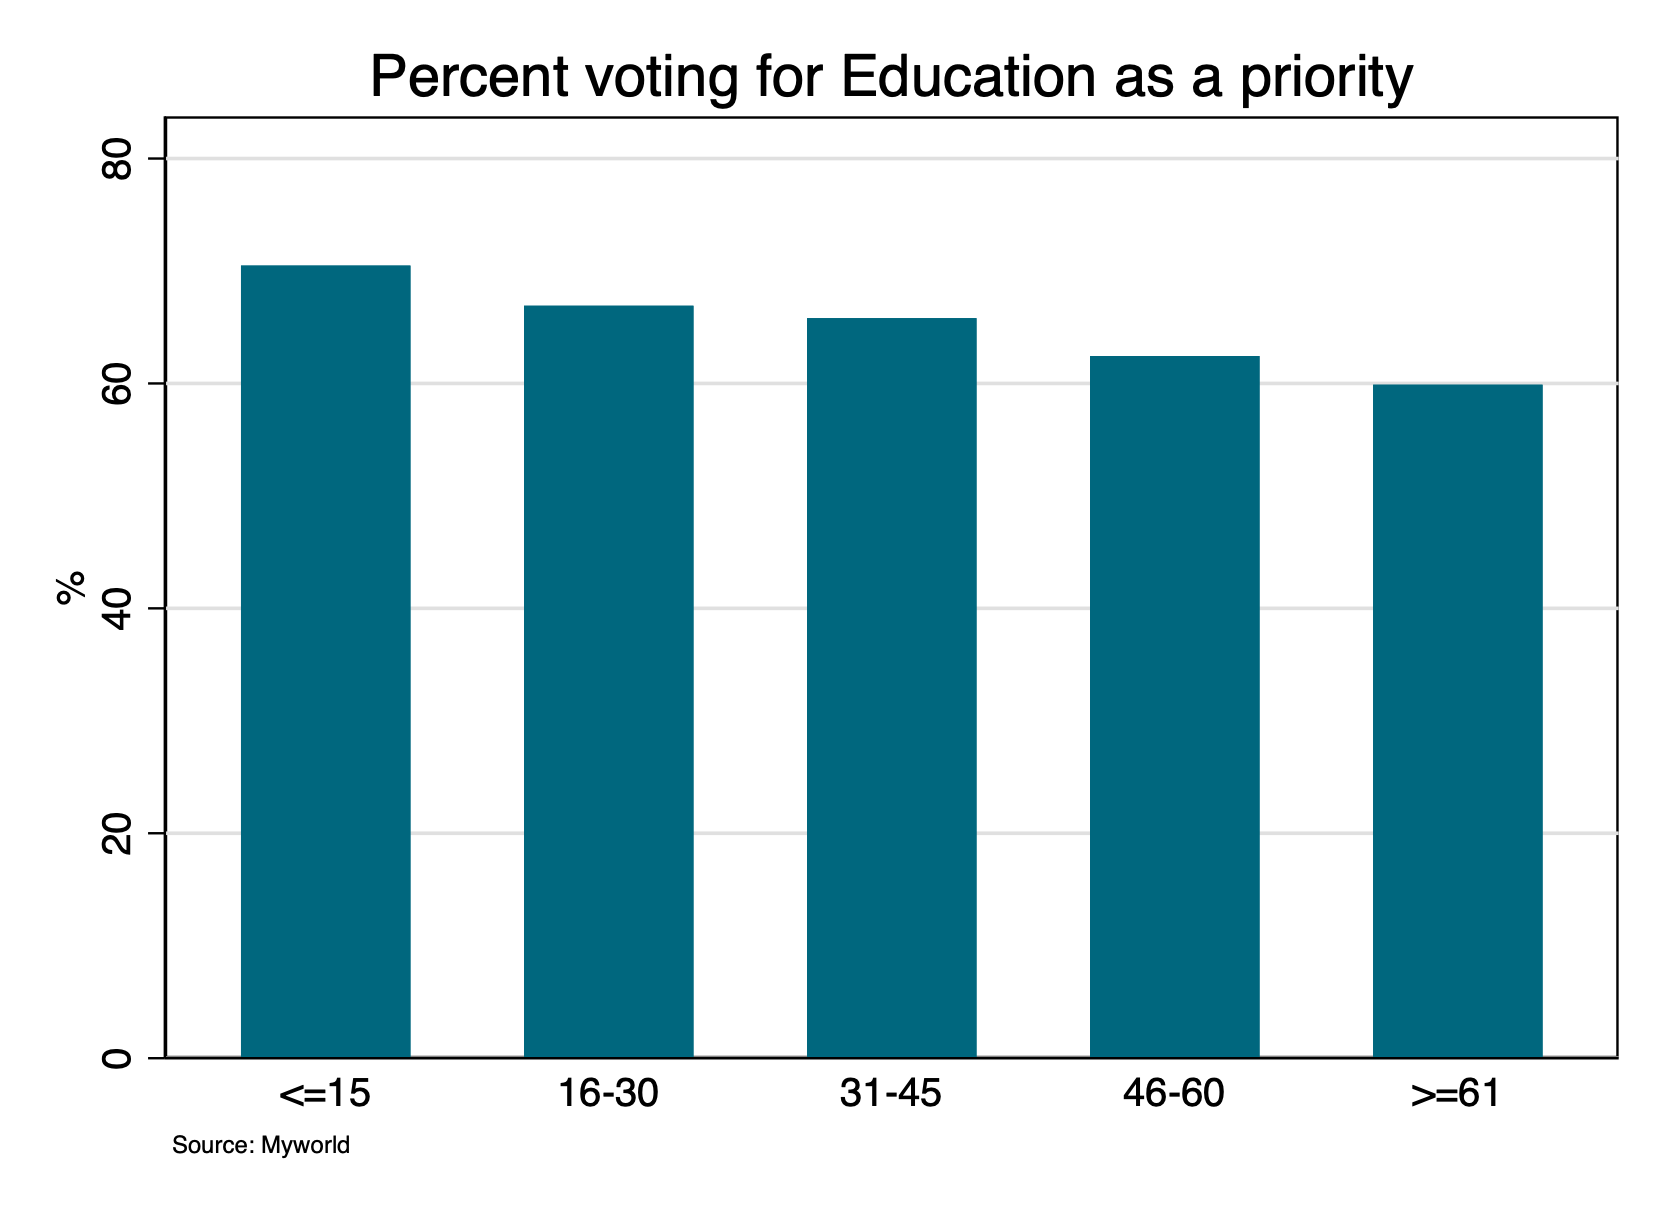 A chart showing percentage voting for education as a priority